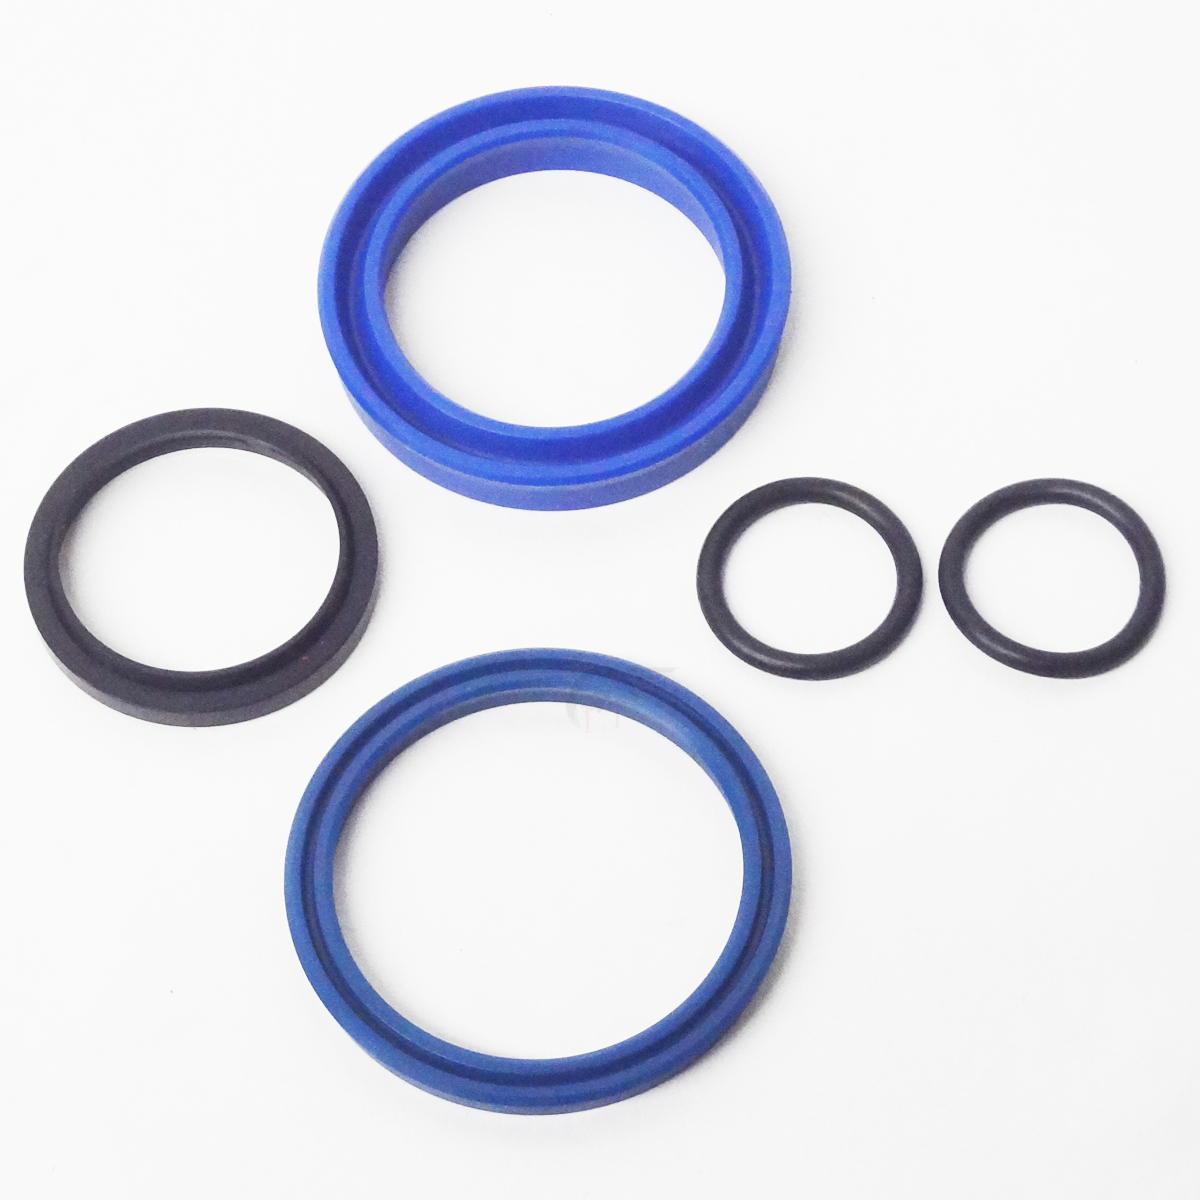 Hydraulic Lift Cylinder Repair : Duro cylinder seal kit rebuild seals for tuxedo lift